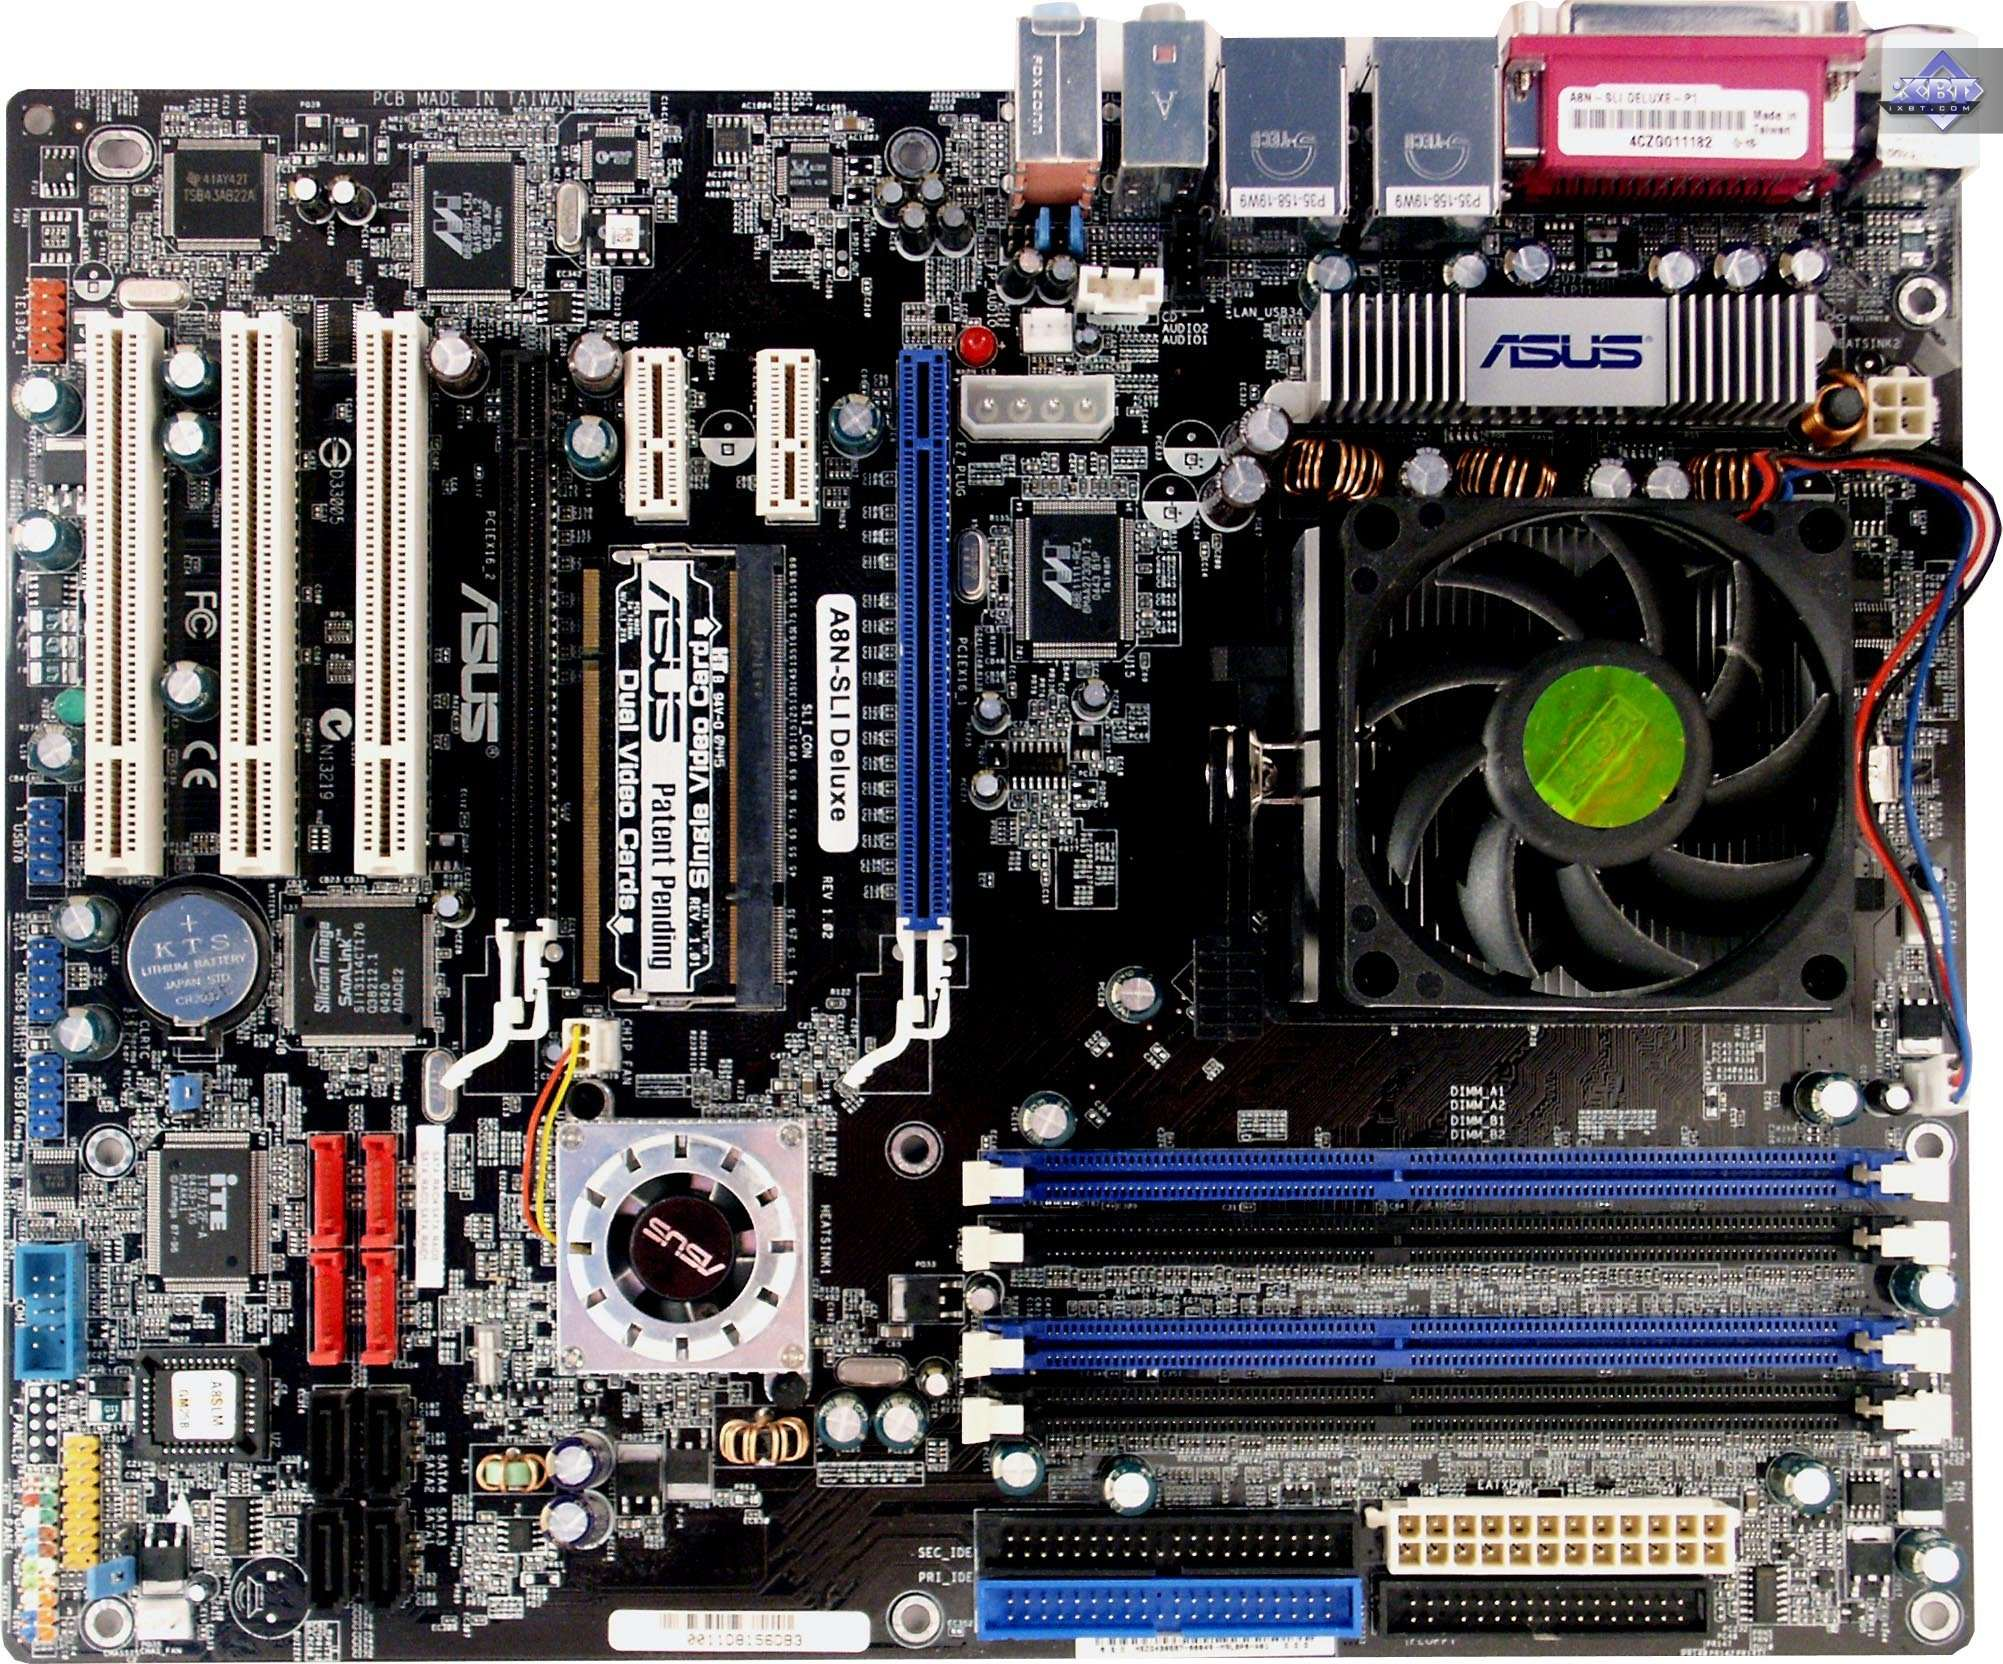 Asus a8n-sli deluxe drivers download.